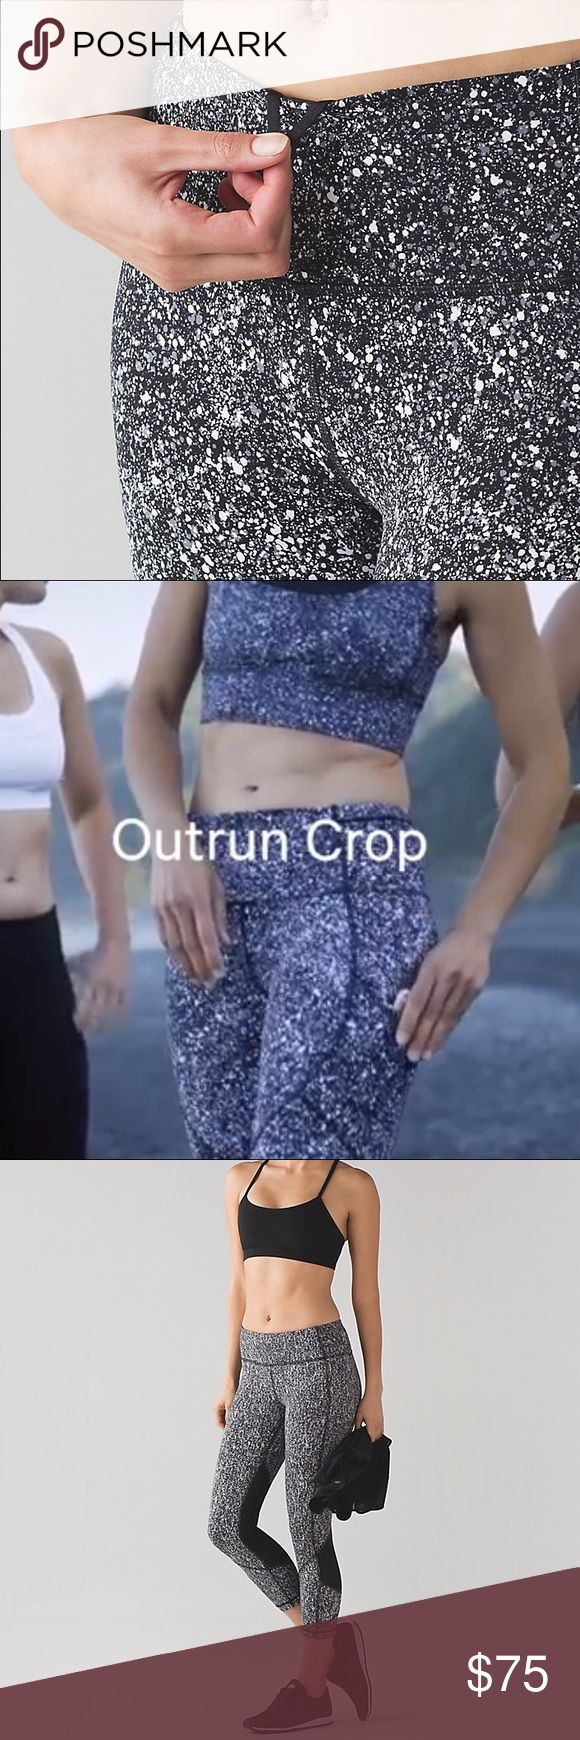 """Lululemon Outrun 17"""" Crop Lululemon Outrun 17"""" Crop in splatter white and black. Brand new with tags never worn. Complete product details can be found here but this colorway is no longer carried. https://shop.lululemon.com/p/women-crops/Outrun-17-Crop/_/prod8260049?rcnt=7&N=7yr&cnt=18&color=LW6AAXS_027754 lululemon athletica Pants"""